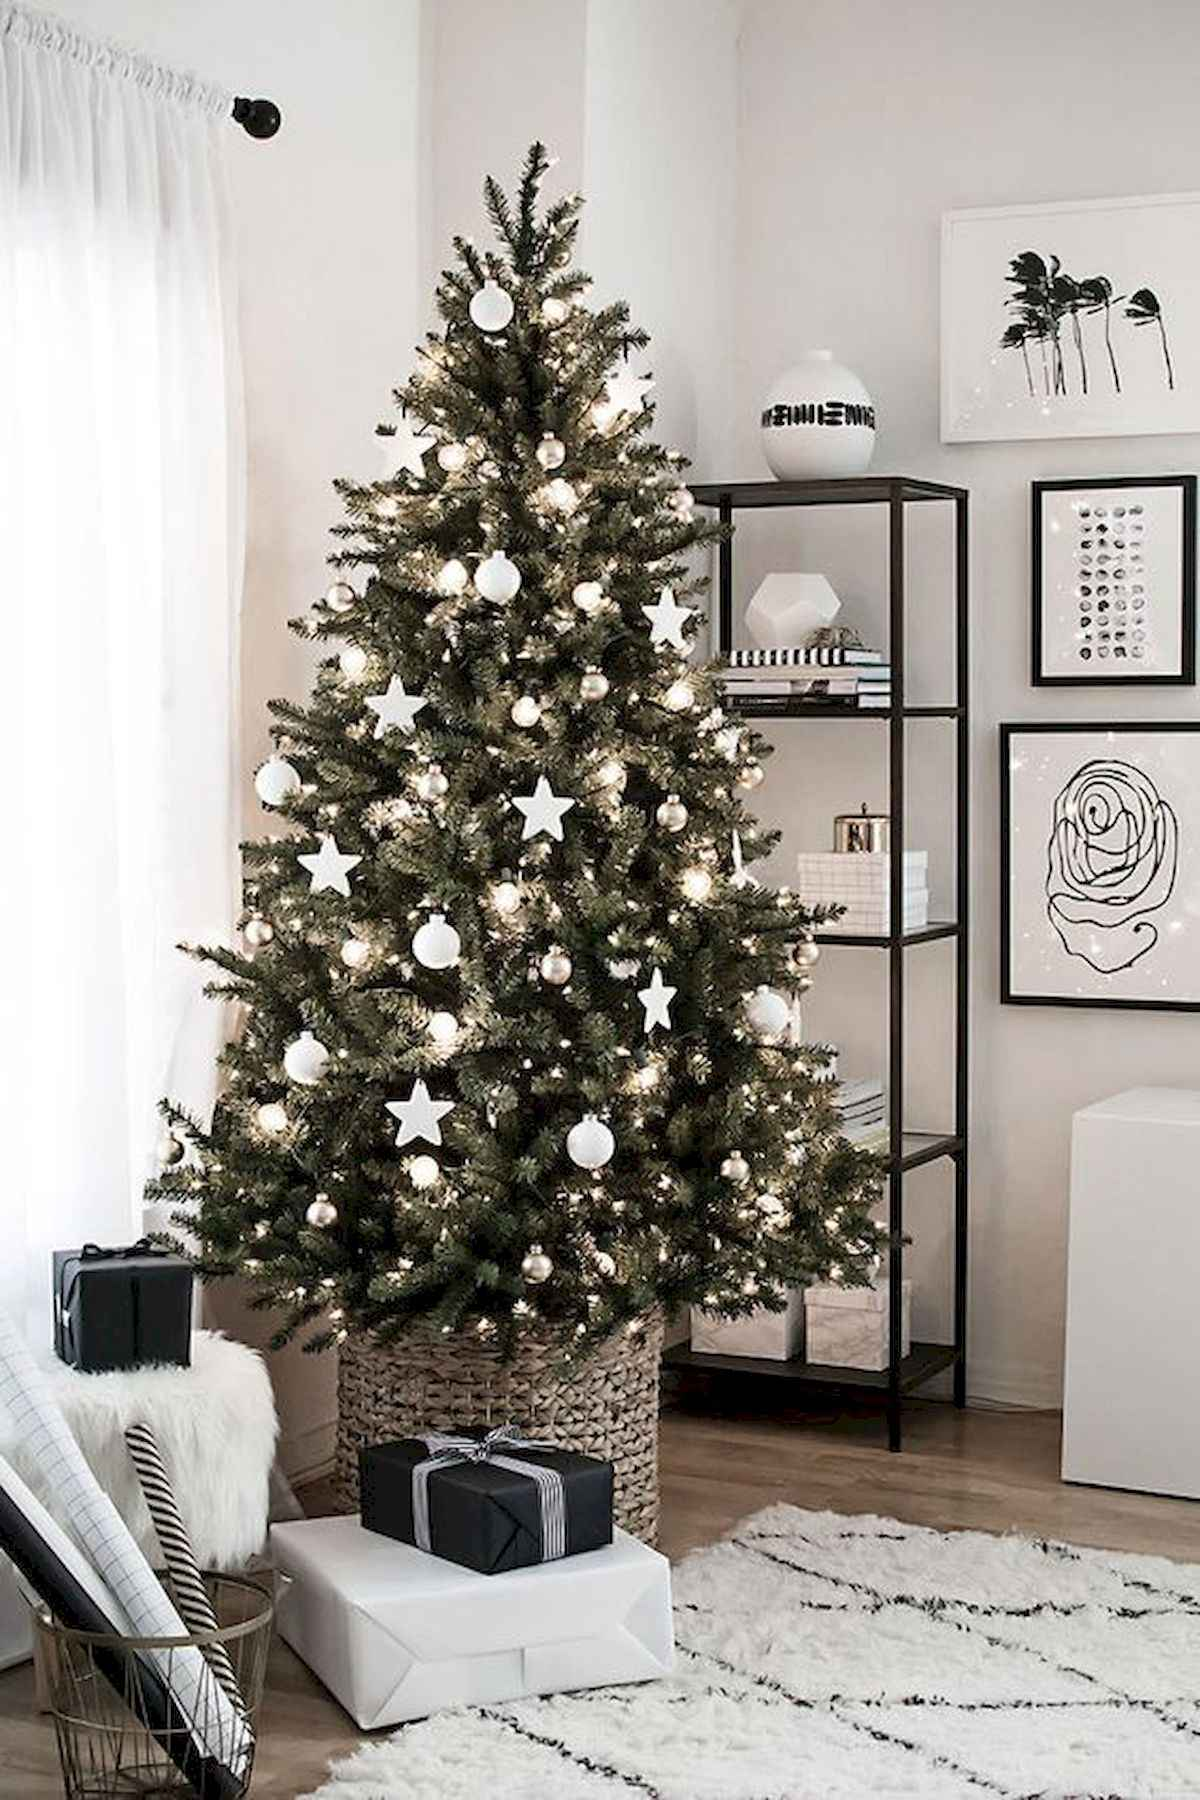 60 awesome christmas tree decorations ideas (1)